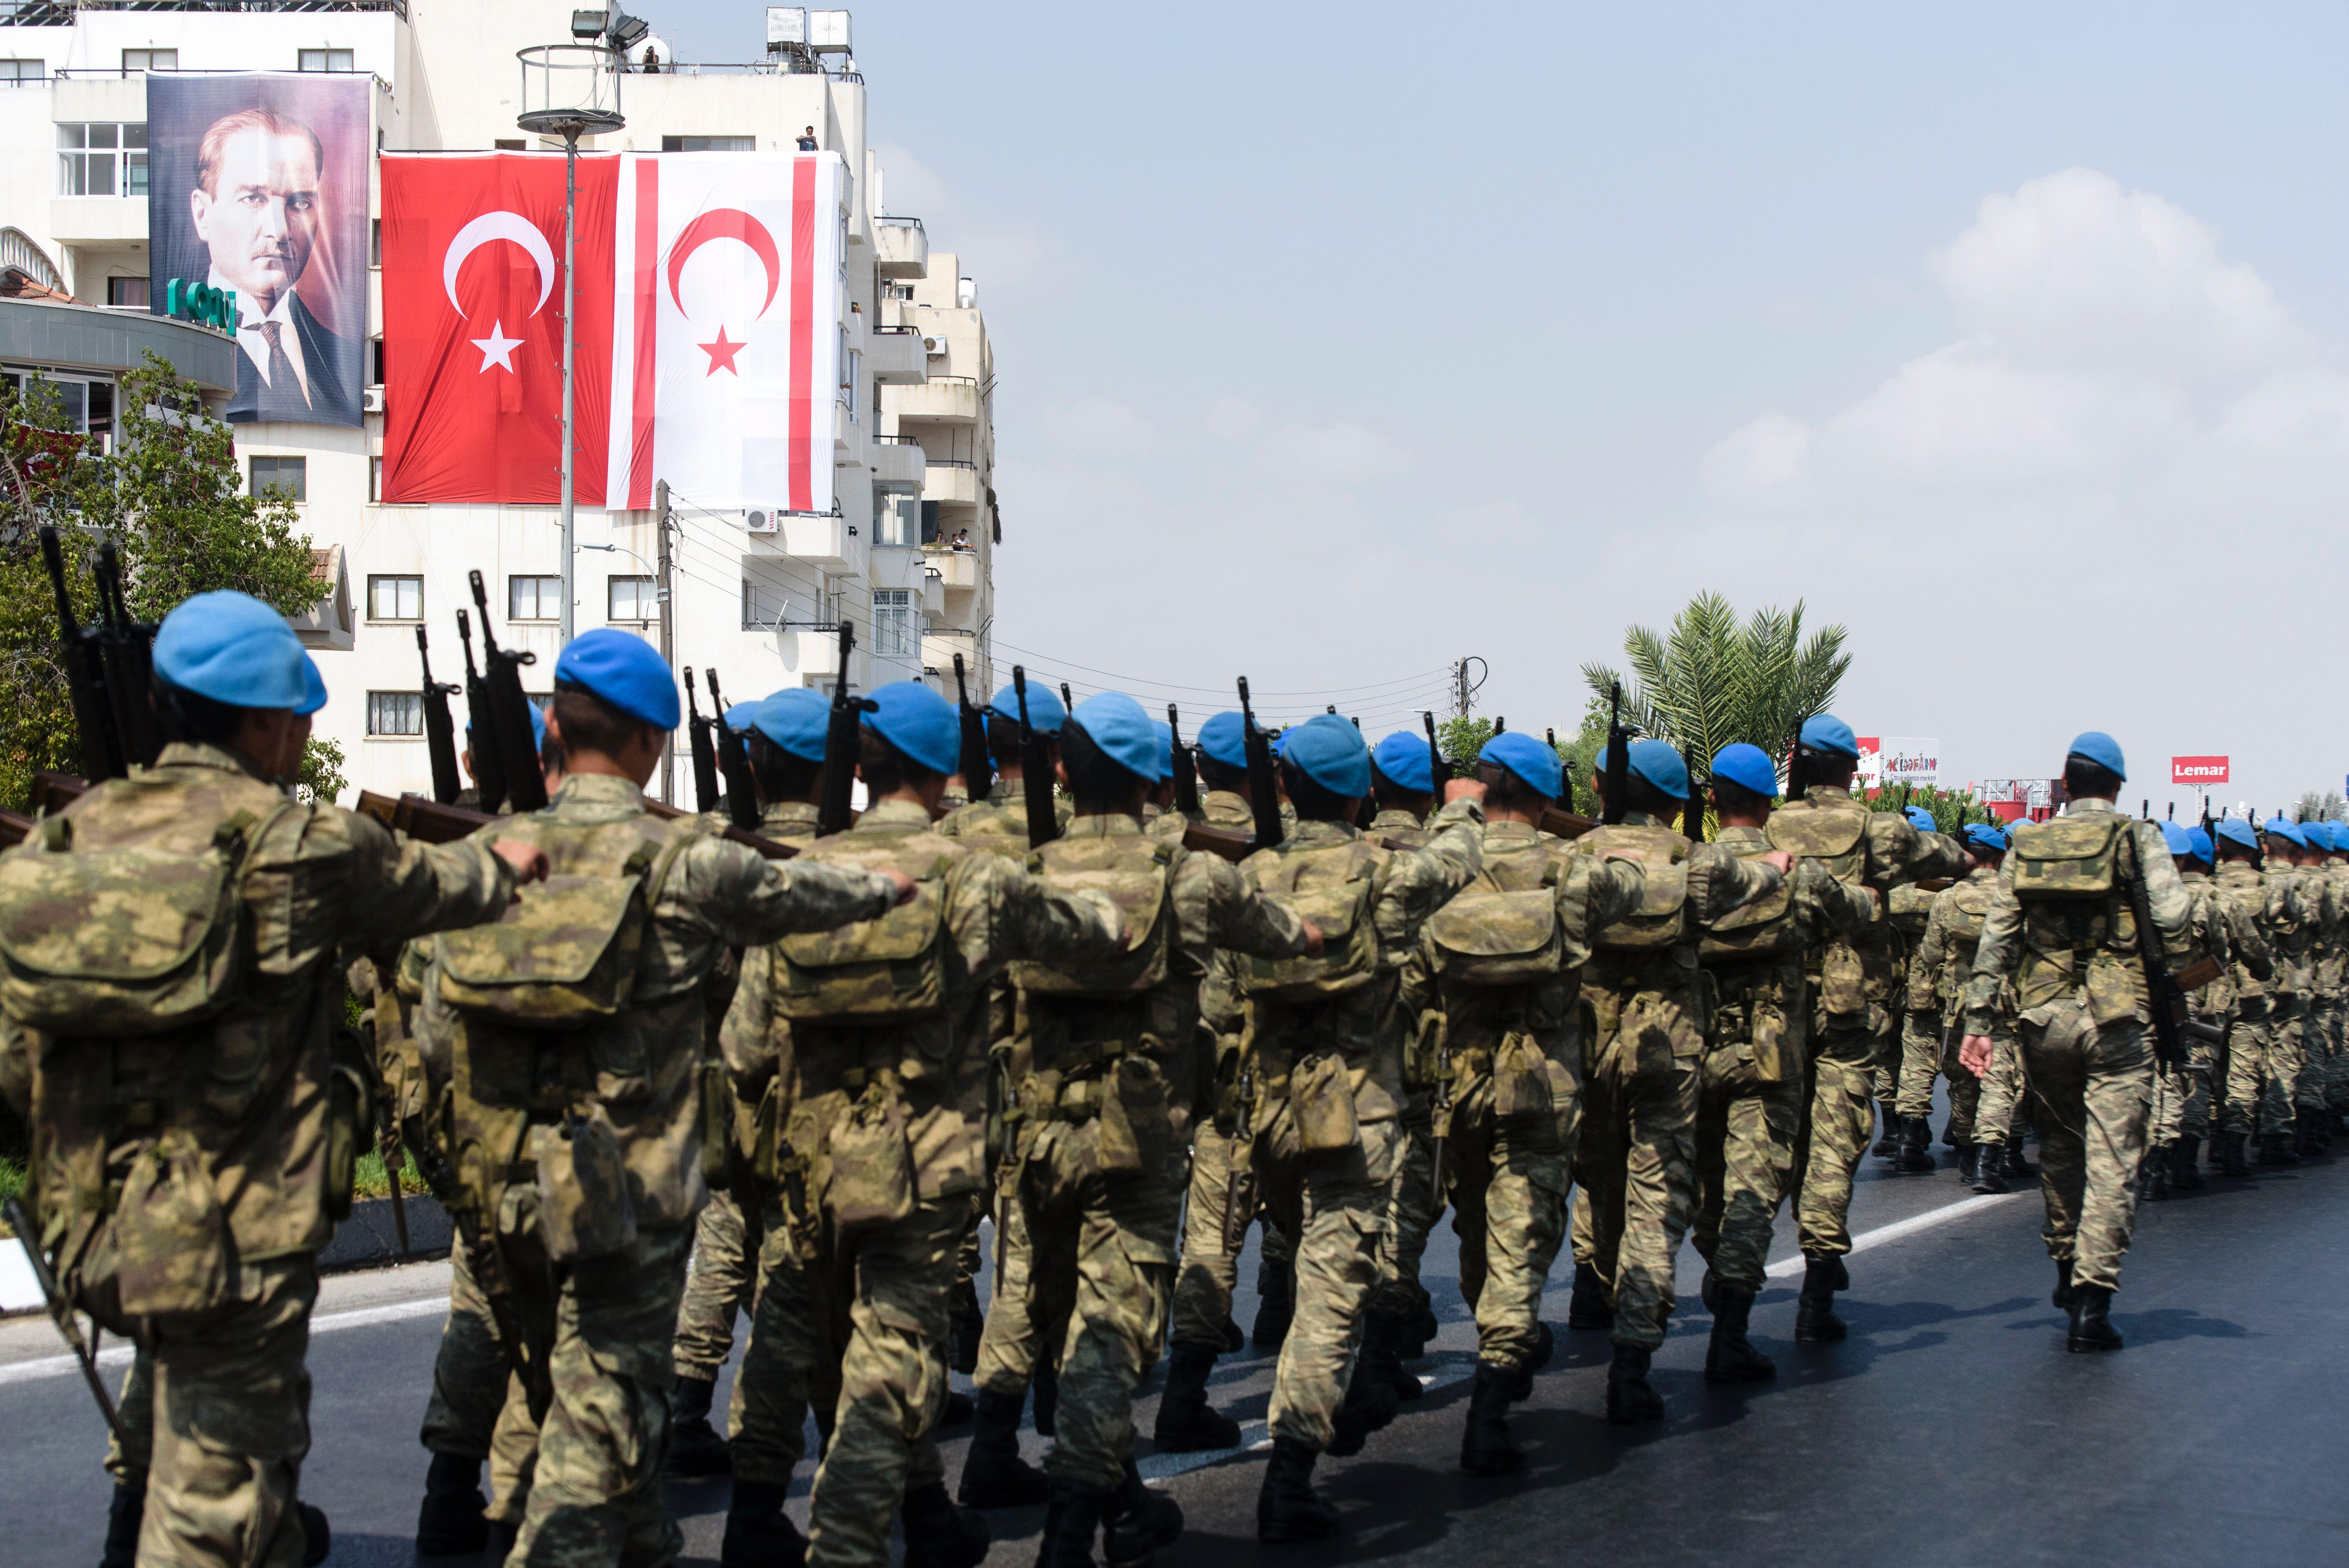 Turkish troops to be deployed to military base in Qatar as